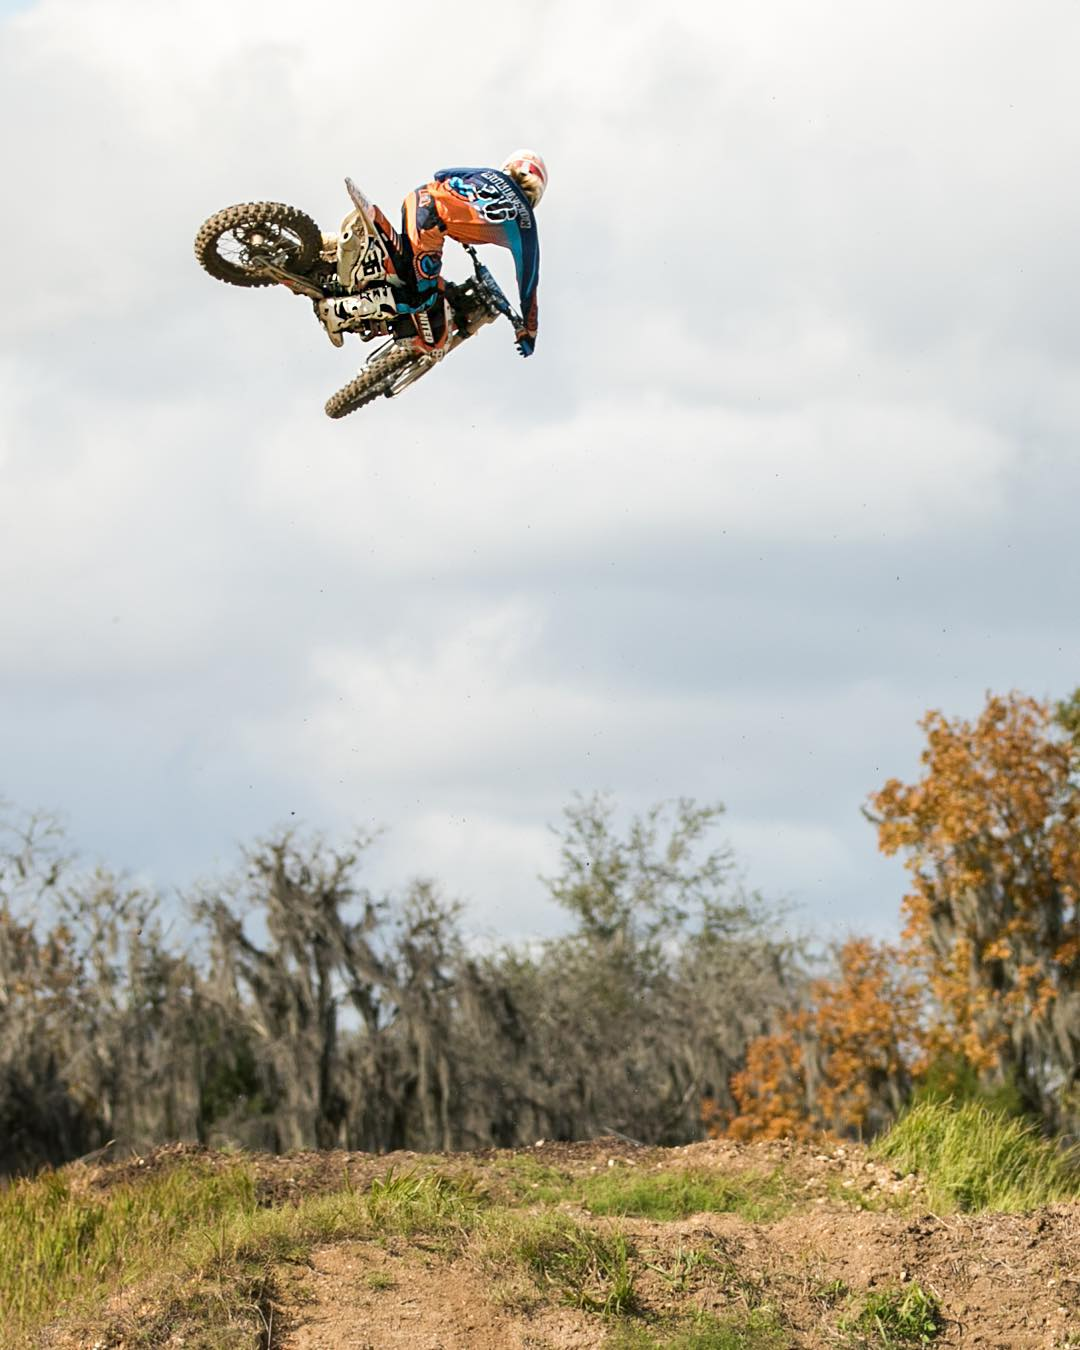 Yay grassy jump! #moto #motocross #hardrock #dirtbikes #motoxaddicts #atifamily #ktm #windy #shred